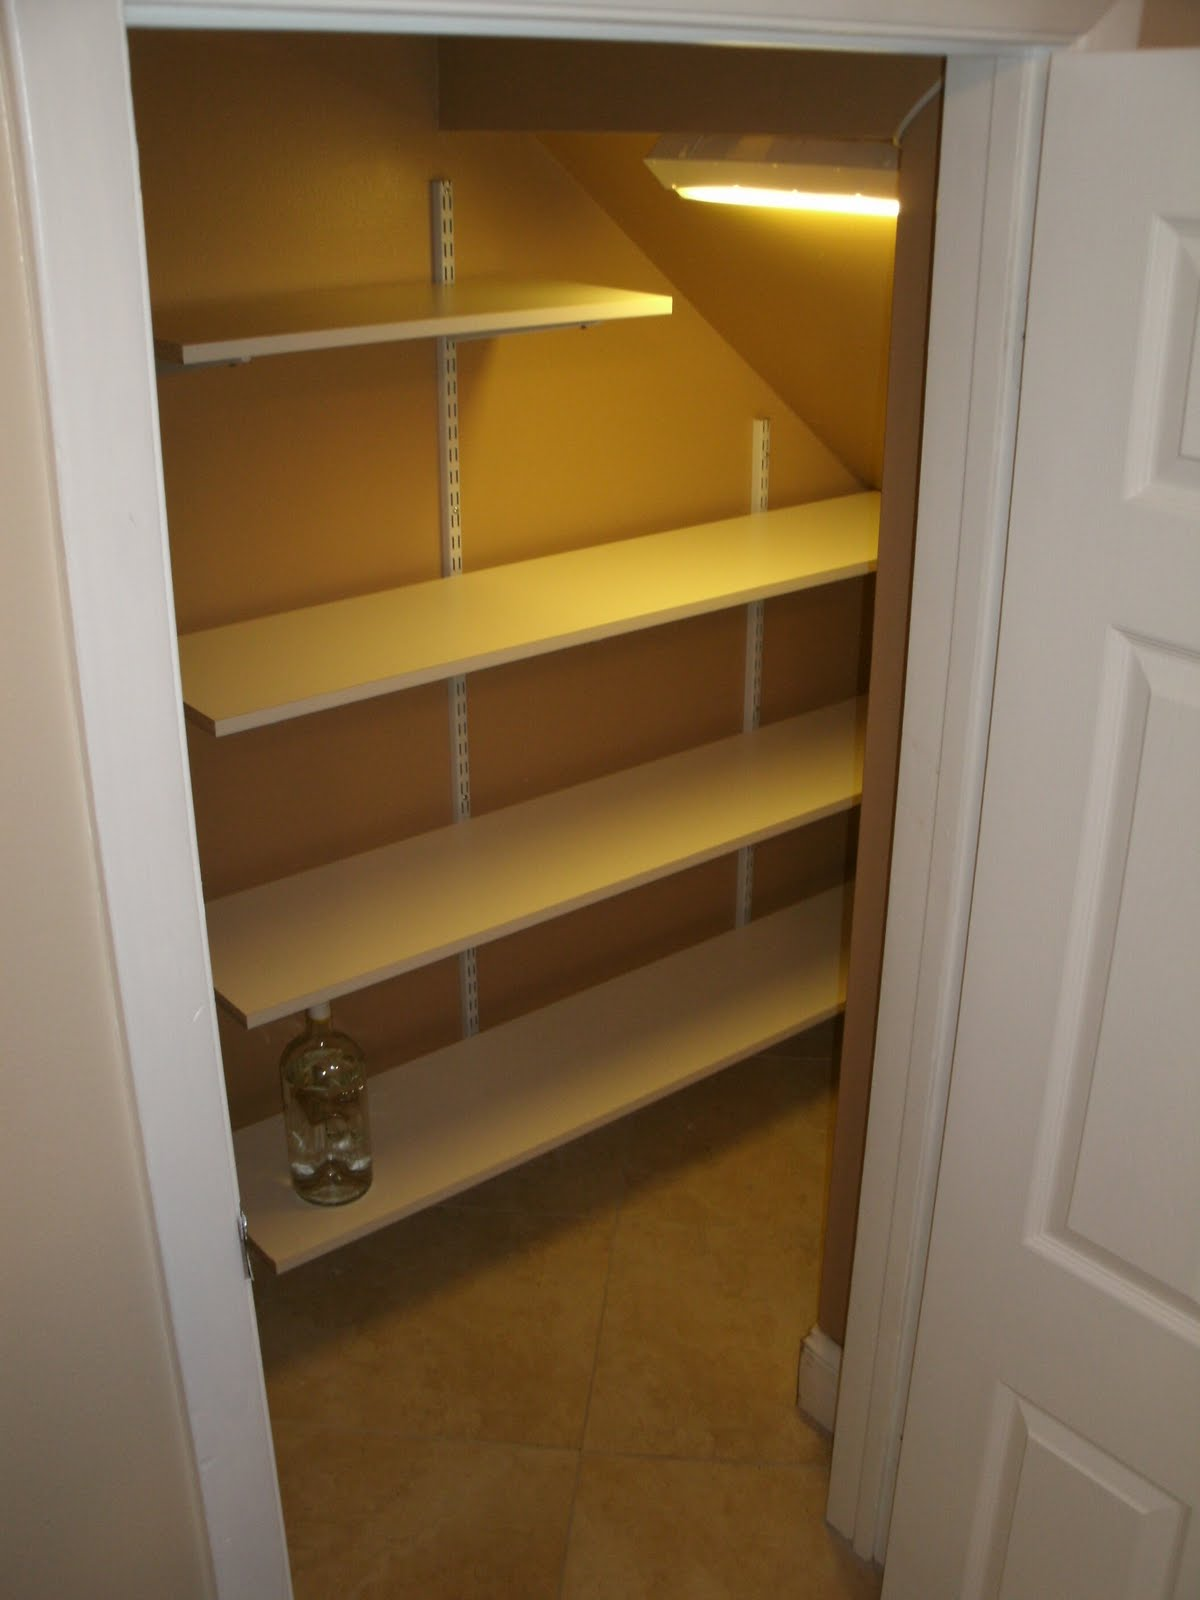 New Shelving In A Small Nook Under Stairs